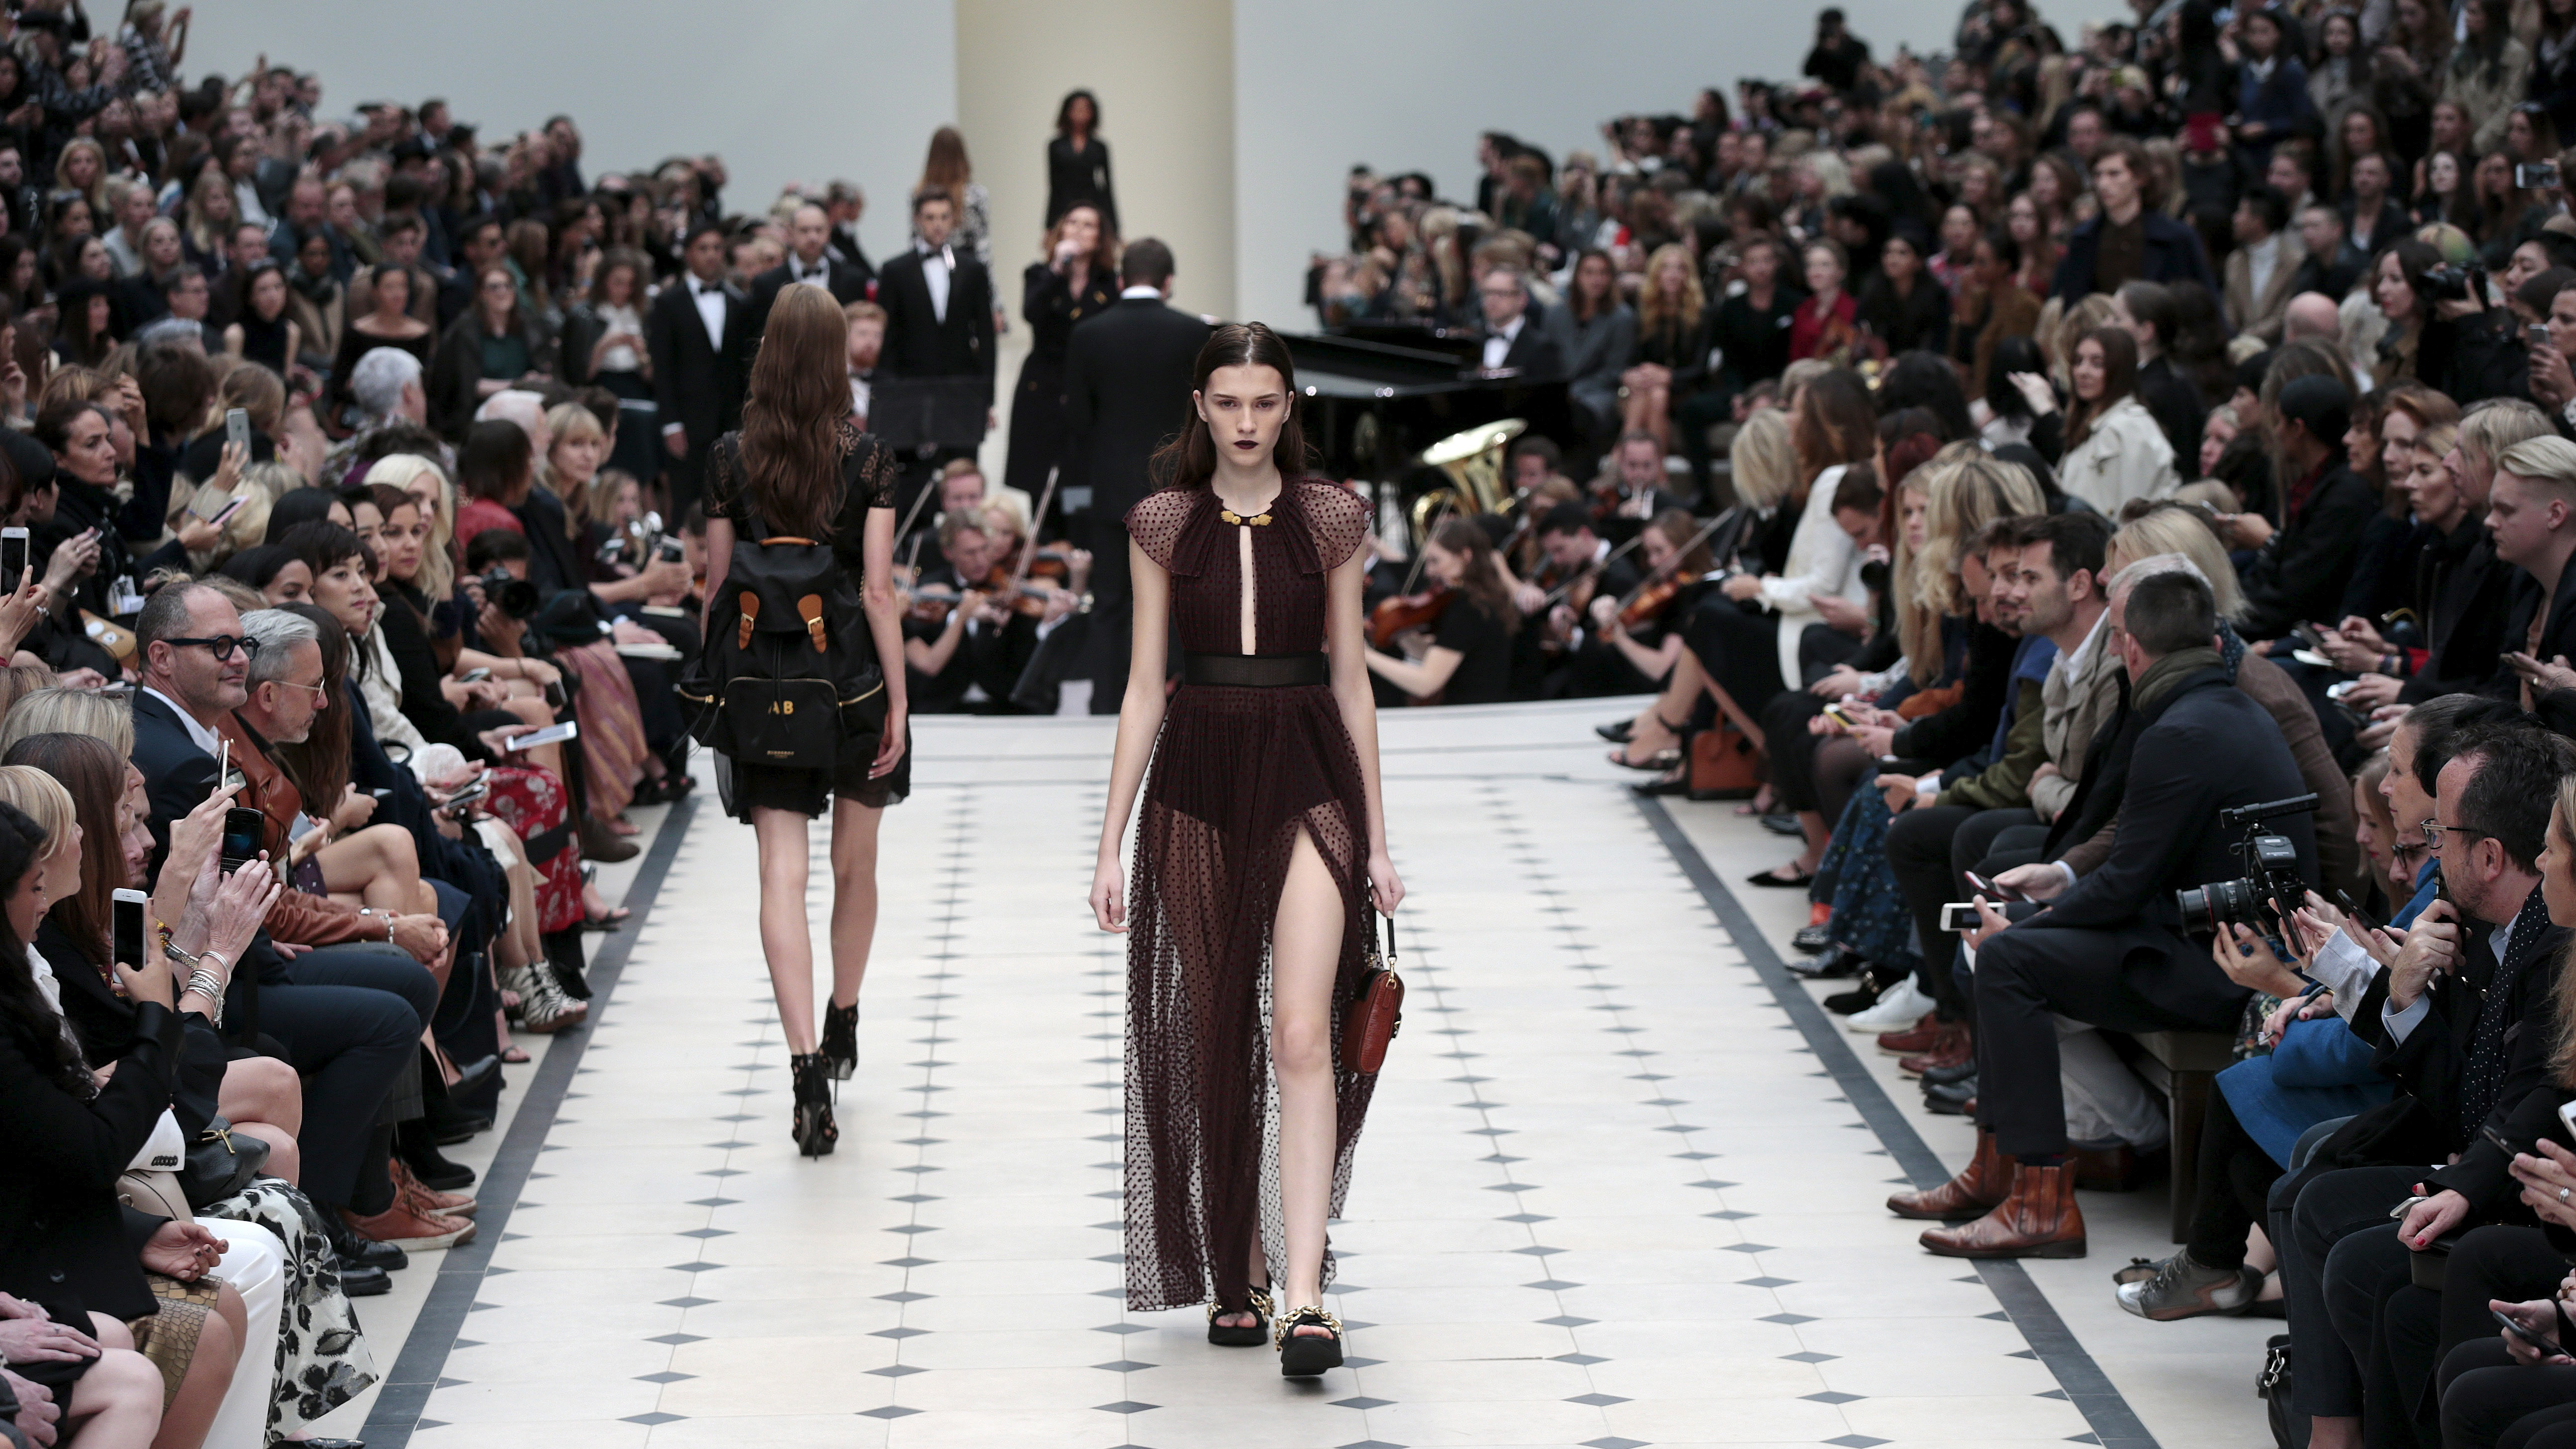 Models present creations from the Burberry Prorsum Spring/Summer 2016 collection during London Fashion Week September 21, 2015.